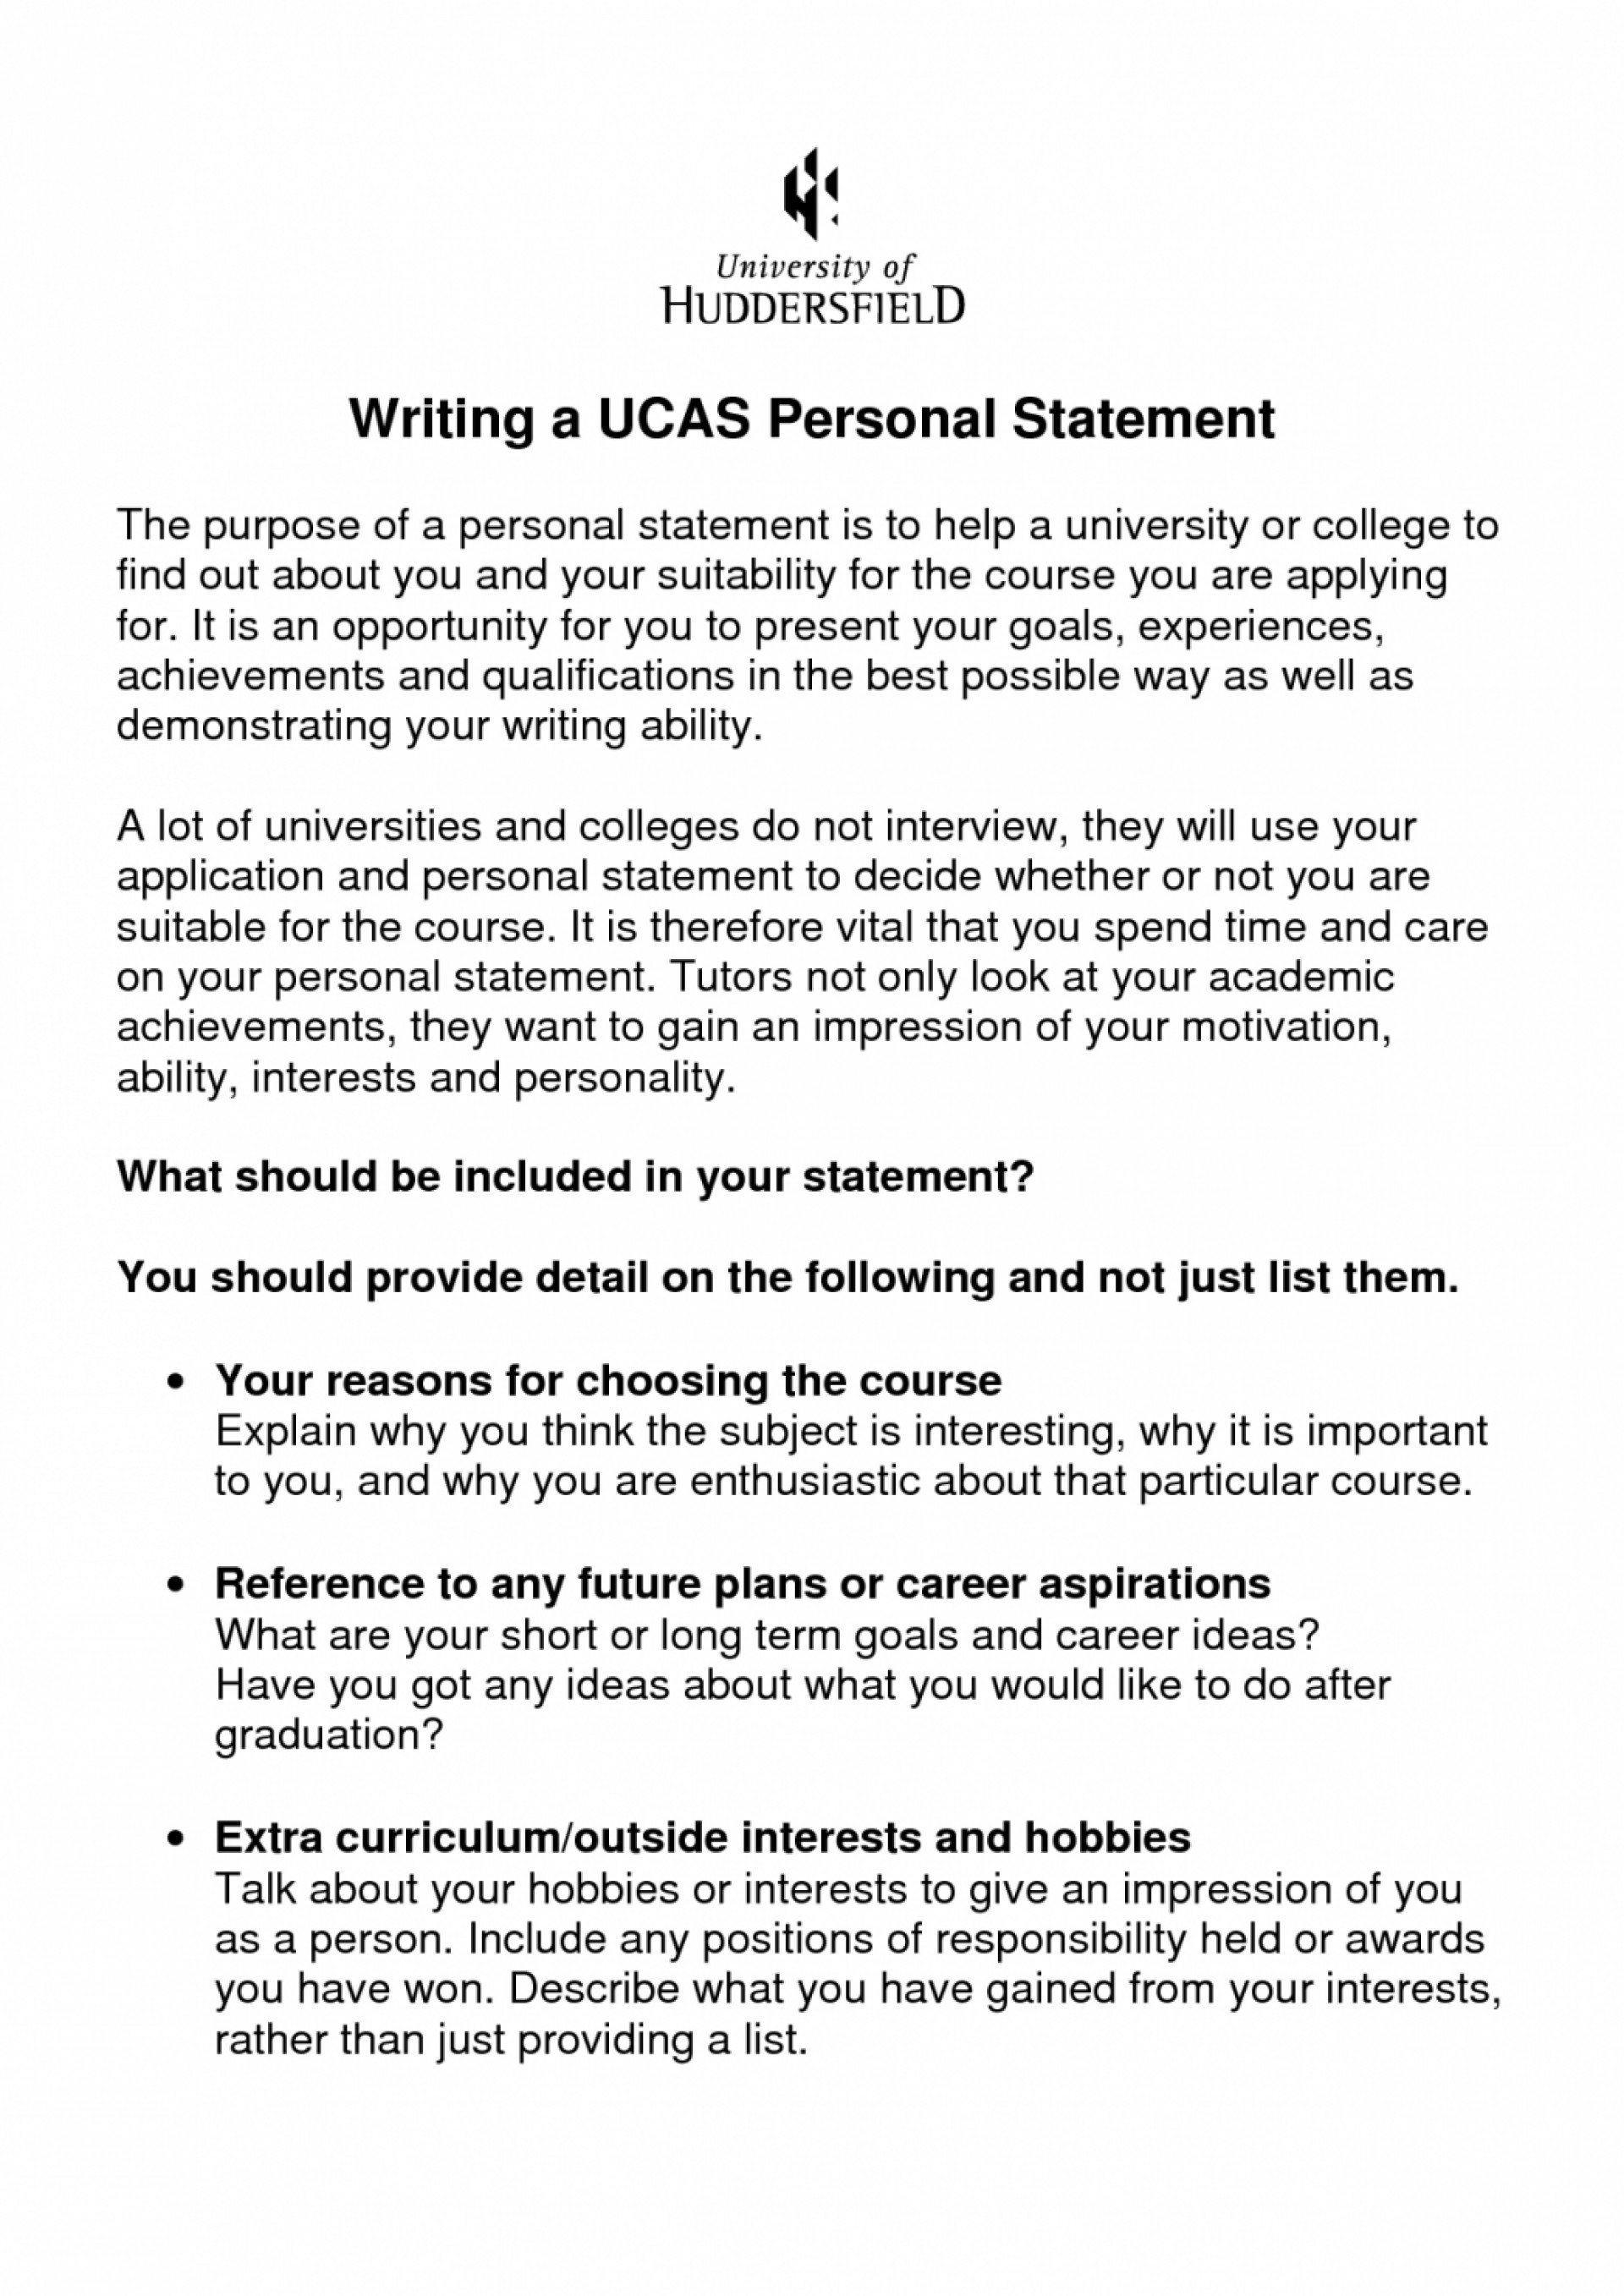 014 Essay Example College Goals Outline Plan Career Personal Statement Examples Ucas 0lt Life Educational Student And Aspirations My Academic Objectives 1048x1482 Whysmportant Frightening Why Is Important In Our 1920